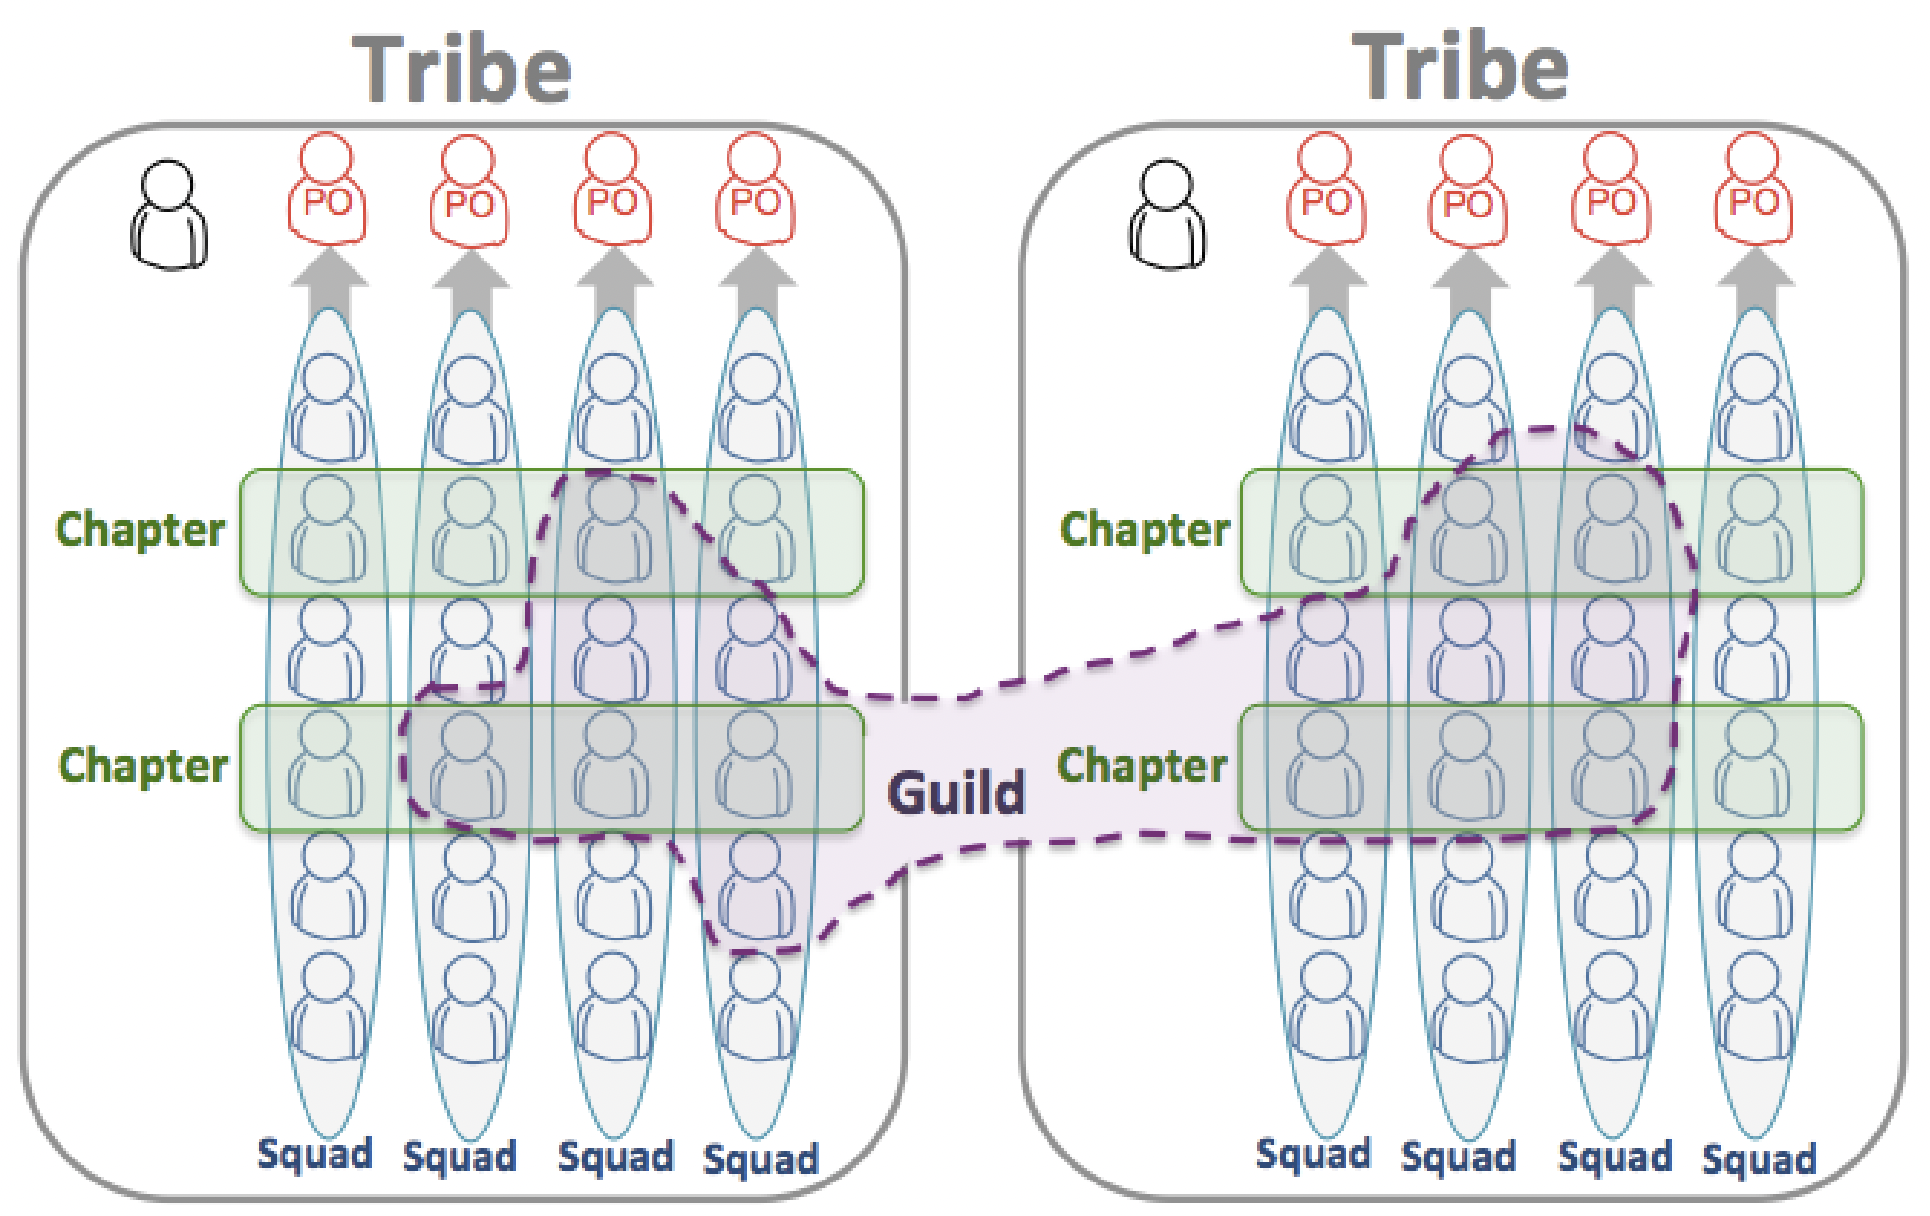 Tribes, Squads, Chapters, Guilds